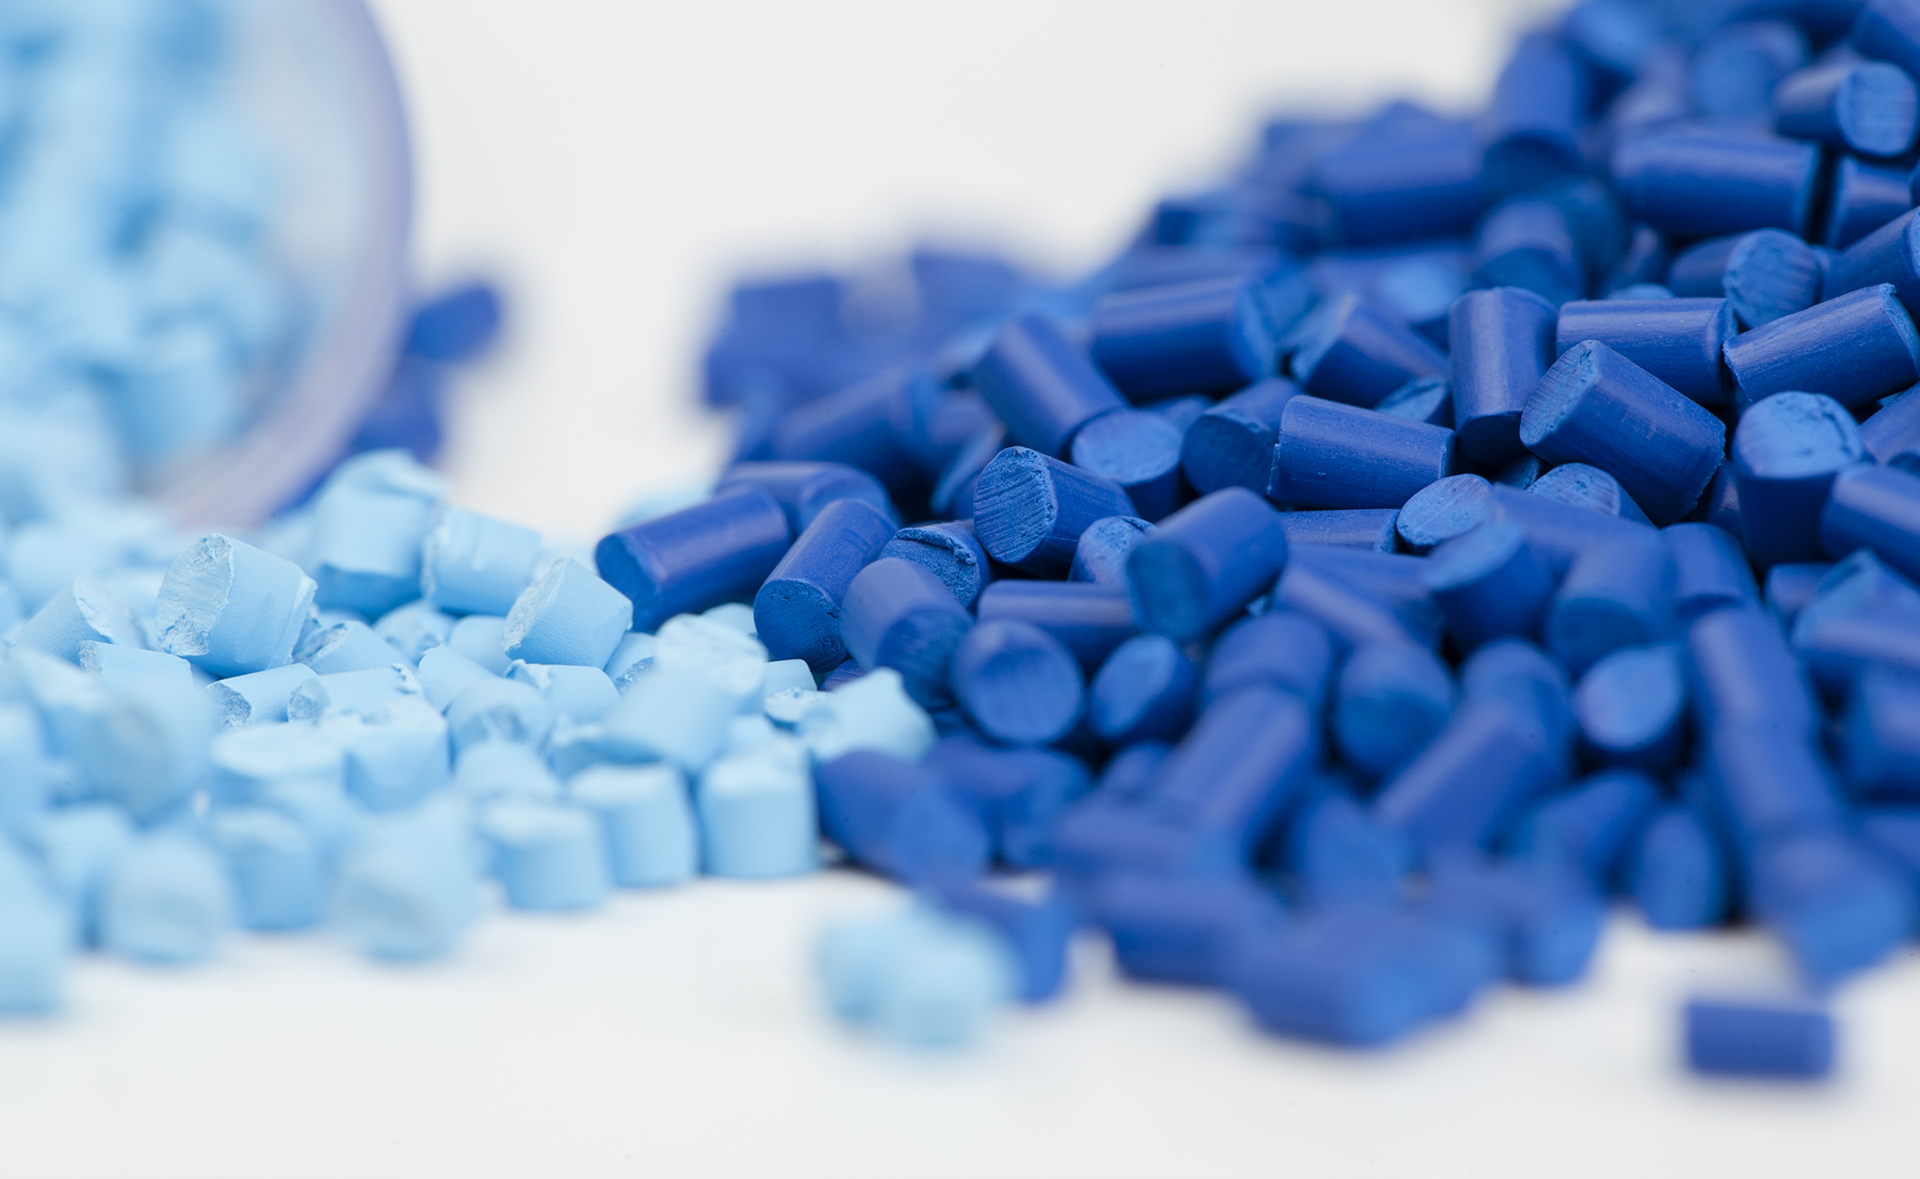 5 Benefits of Choosing Thermoplastic Components for Can't-Fail Applications